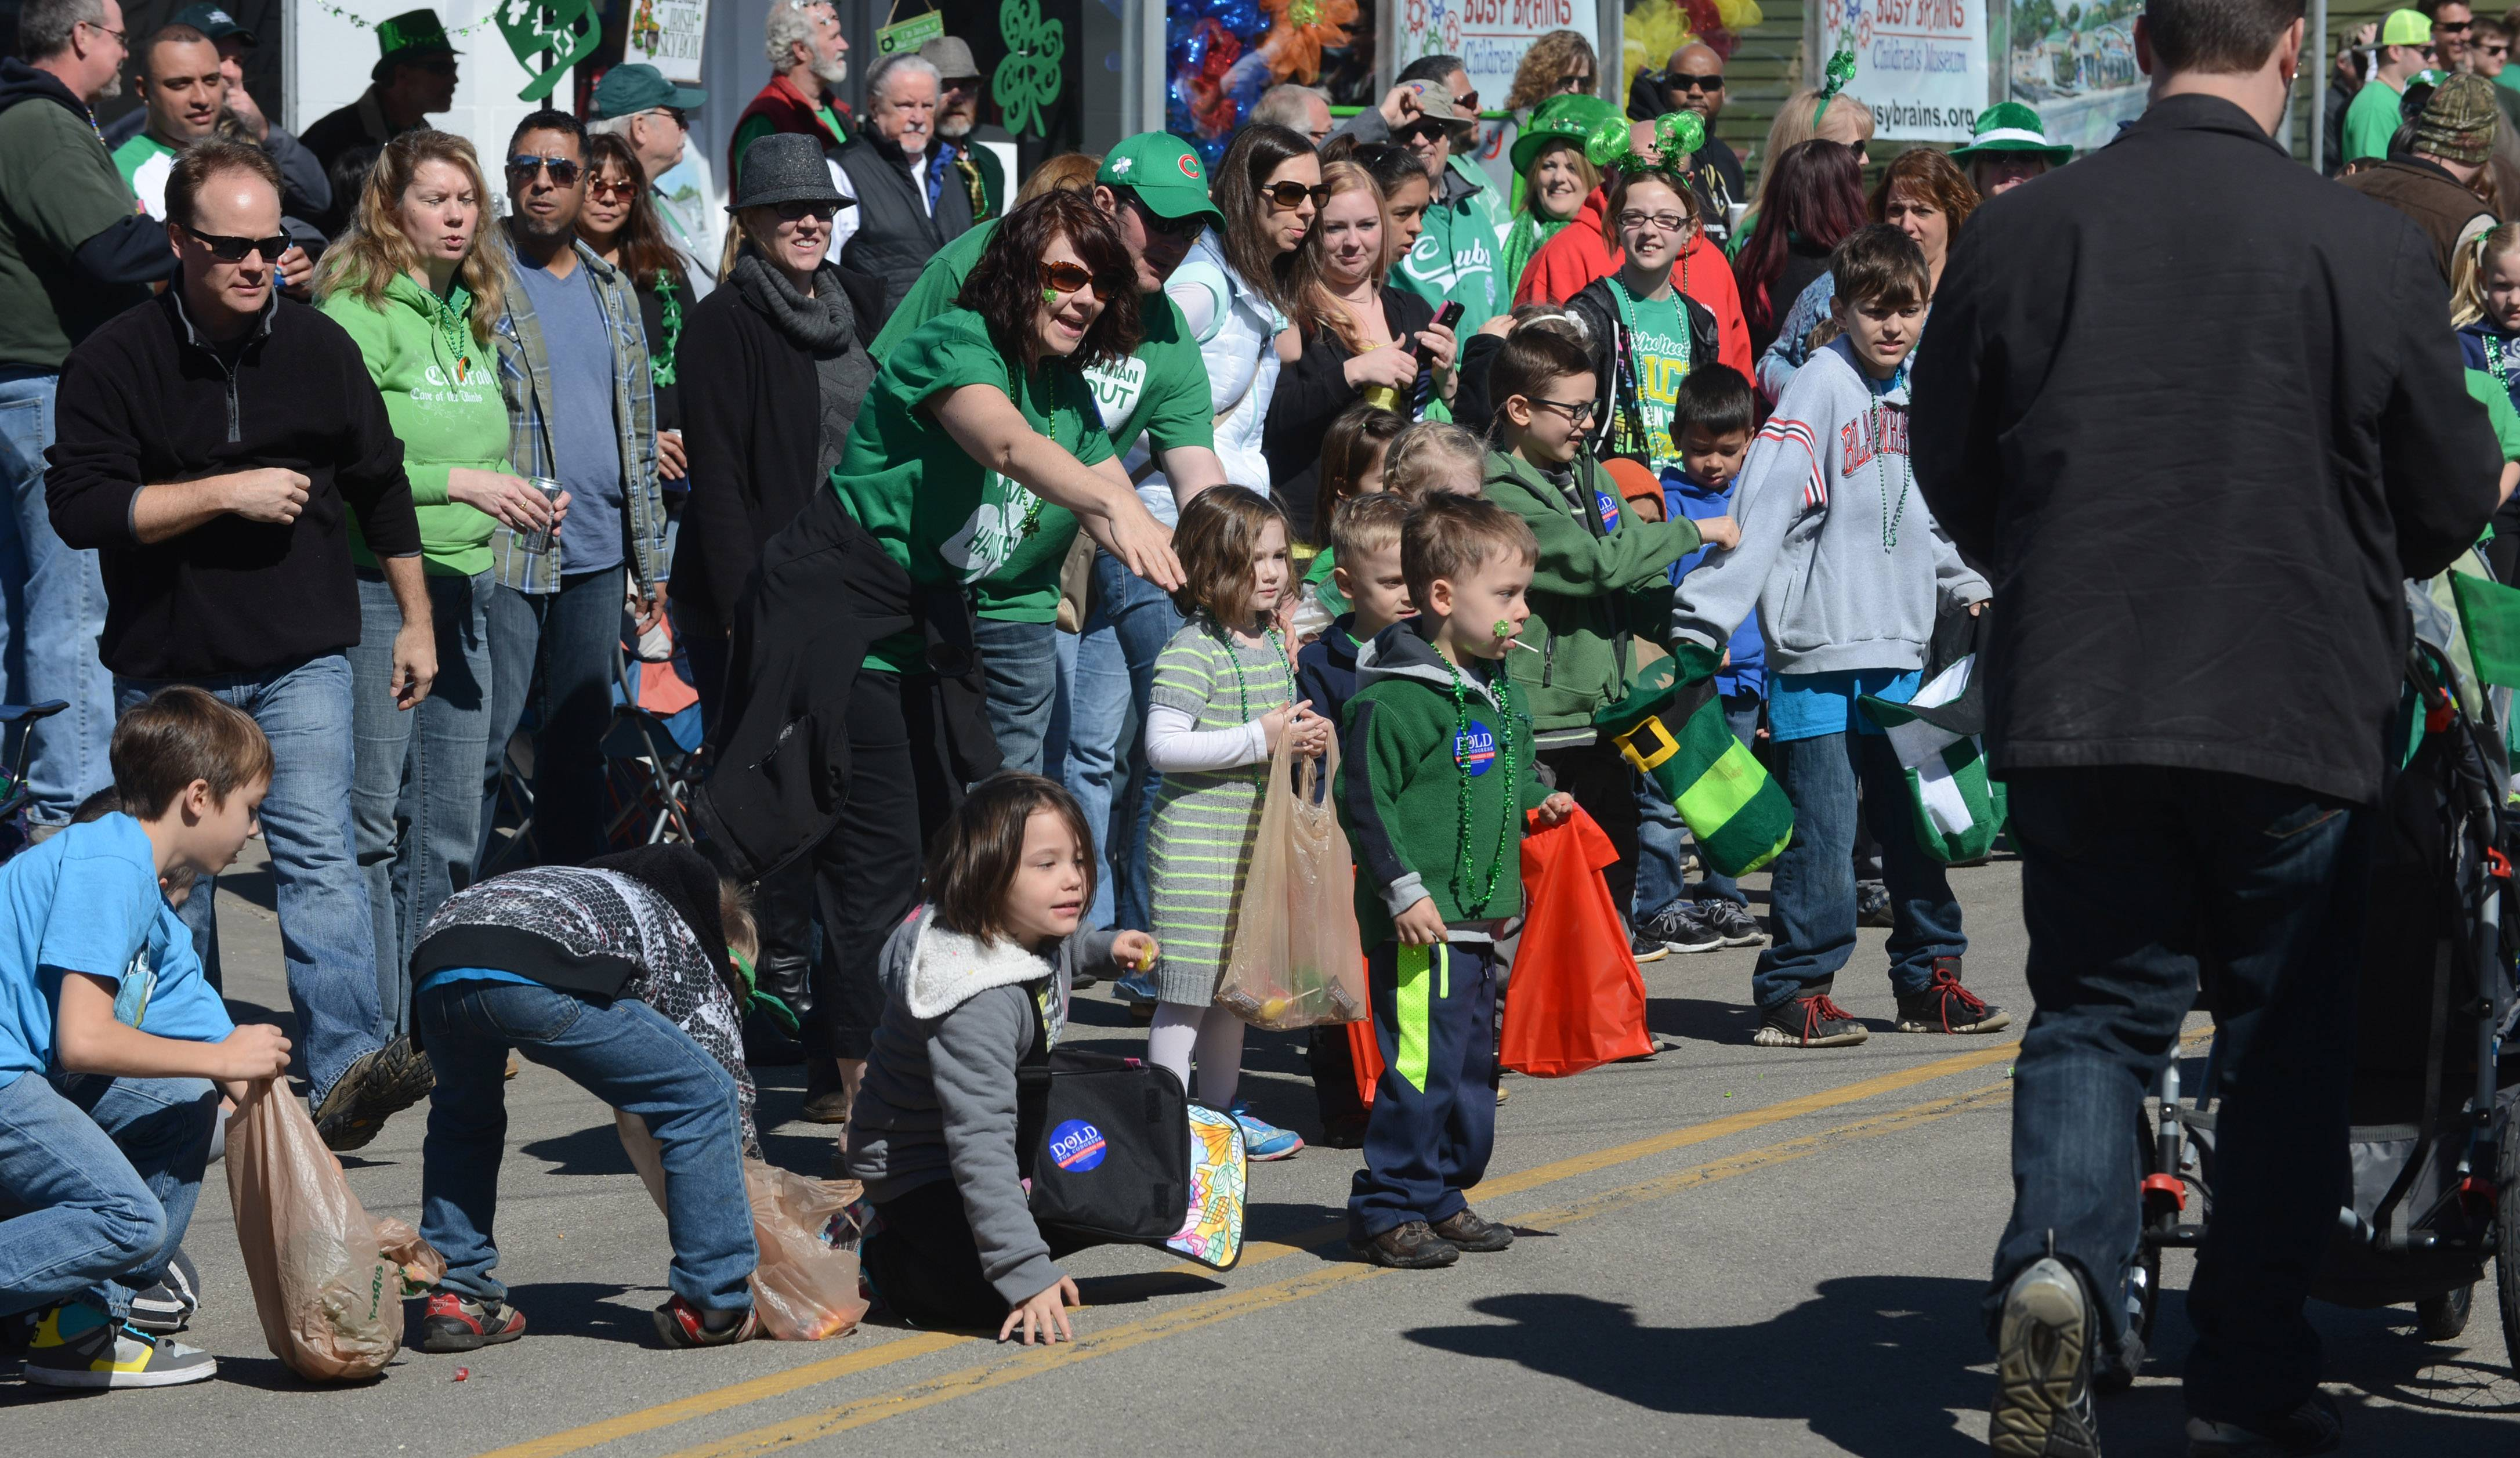 Enjoy Lake County's biggest St. Patrick's Day Parade March 16 in Lake Villa